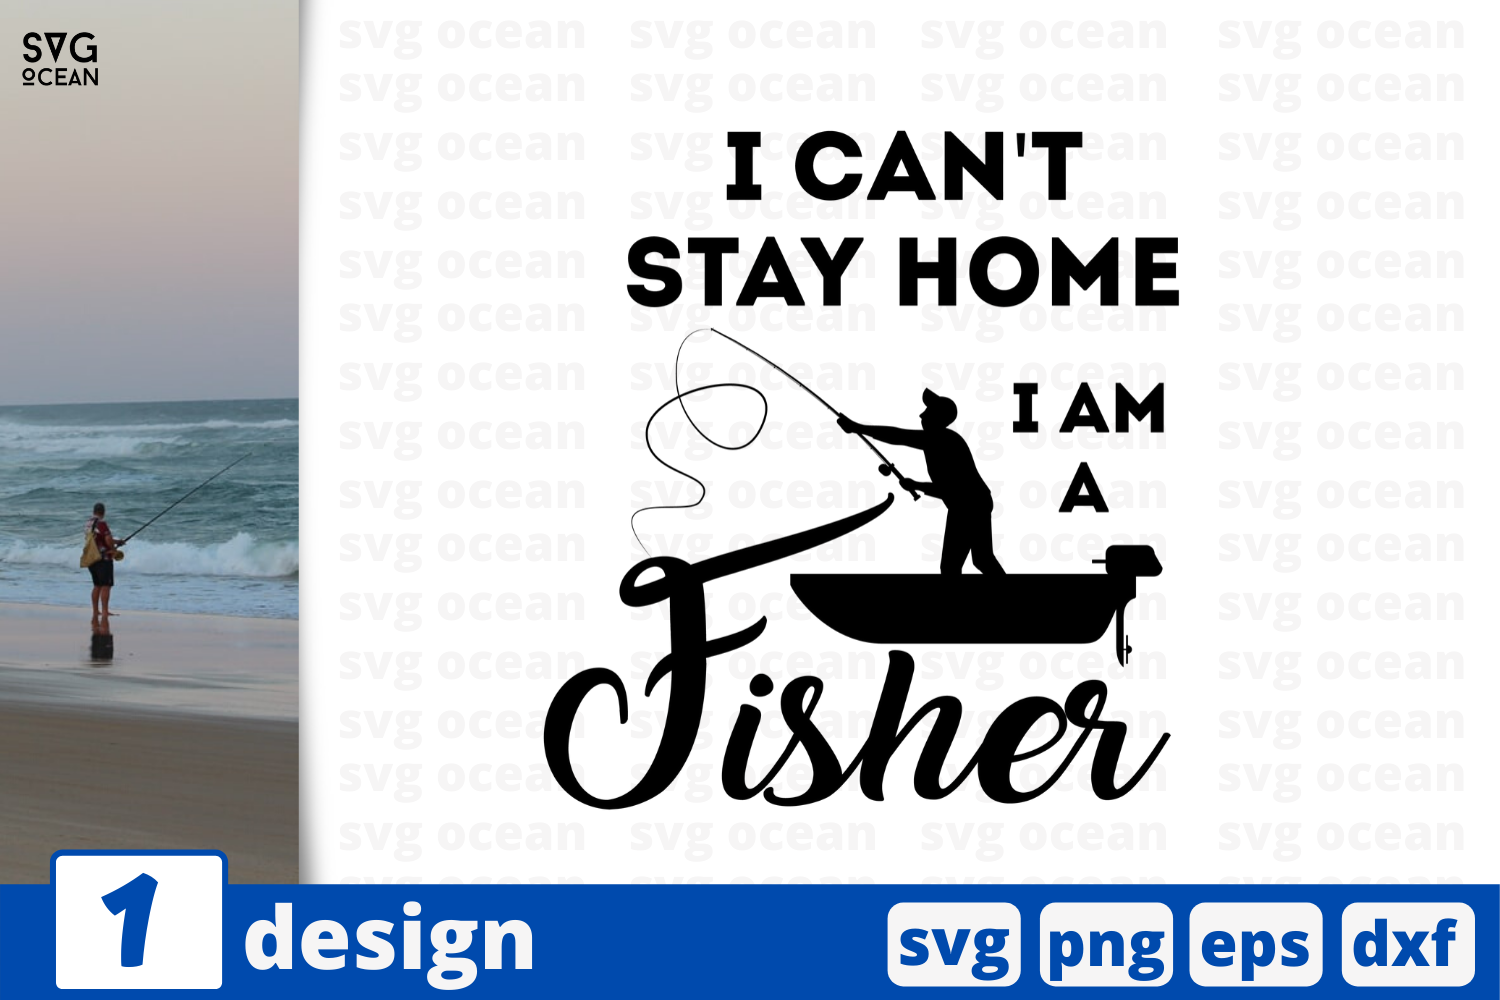 Download Free I Can T Stay Home I M A Fisher Graphic By Svgocean Creative for Cricut Explore, Silhouette and other cutting machines.